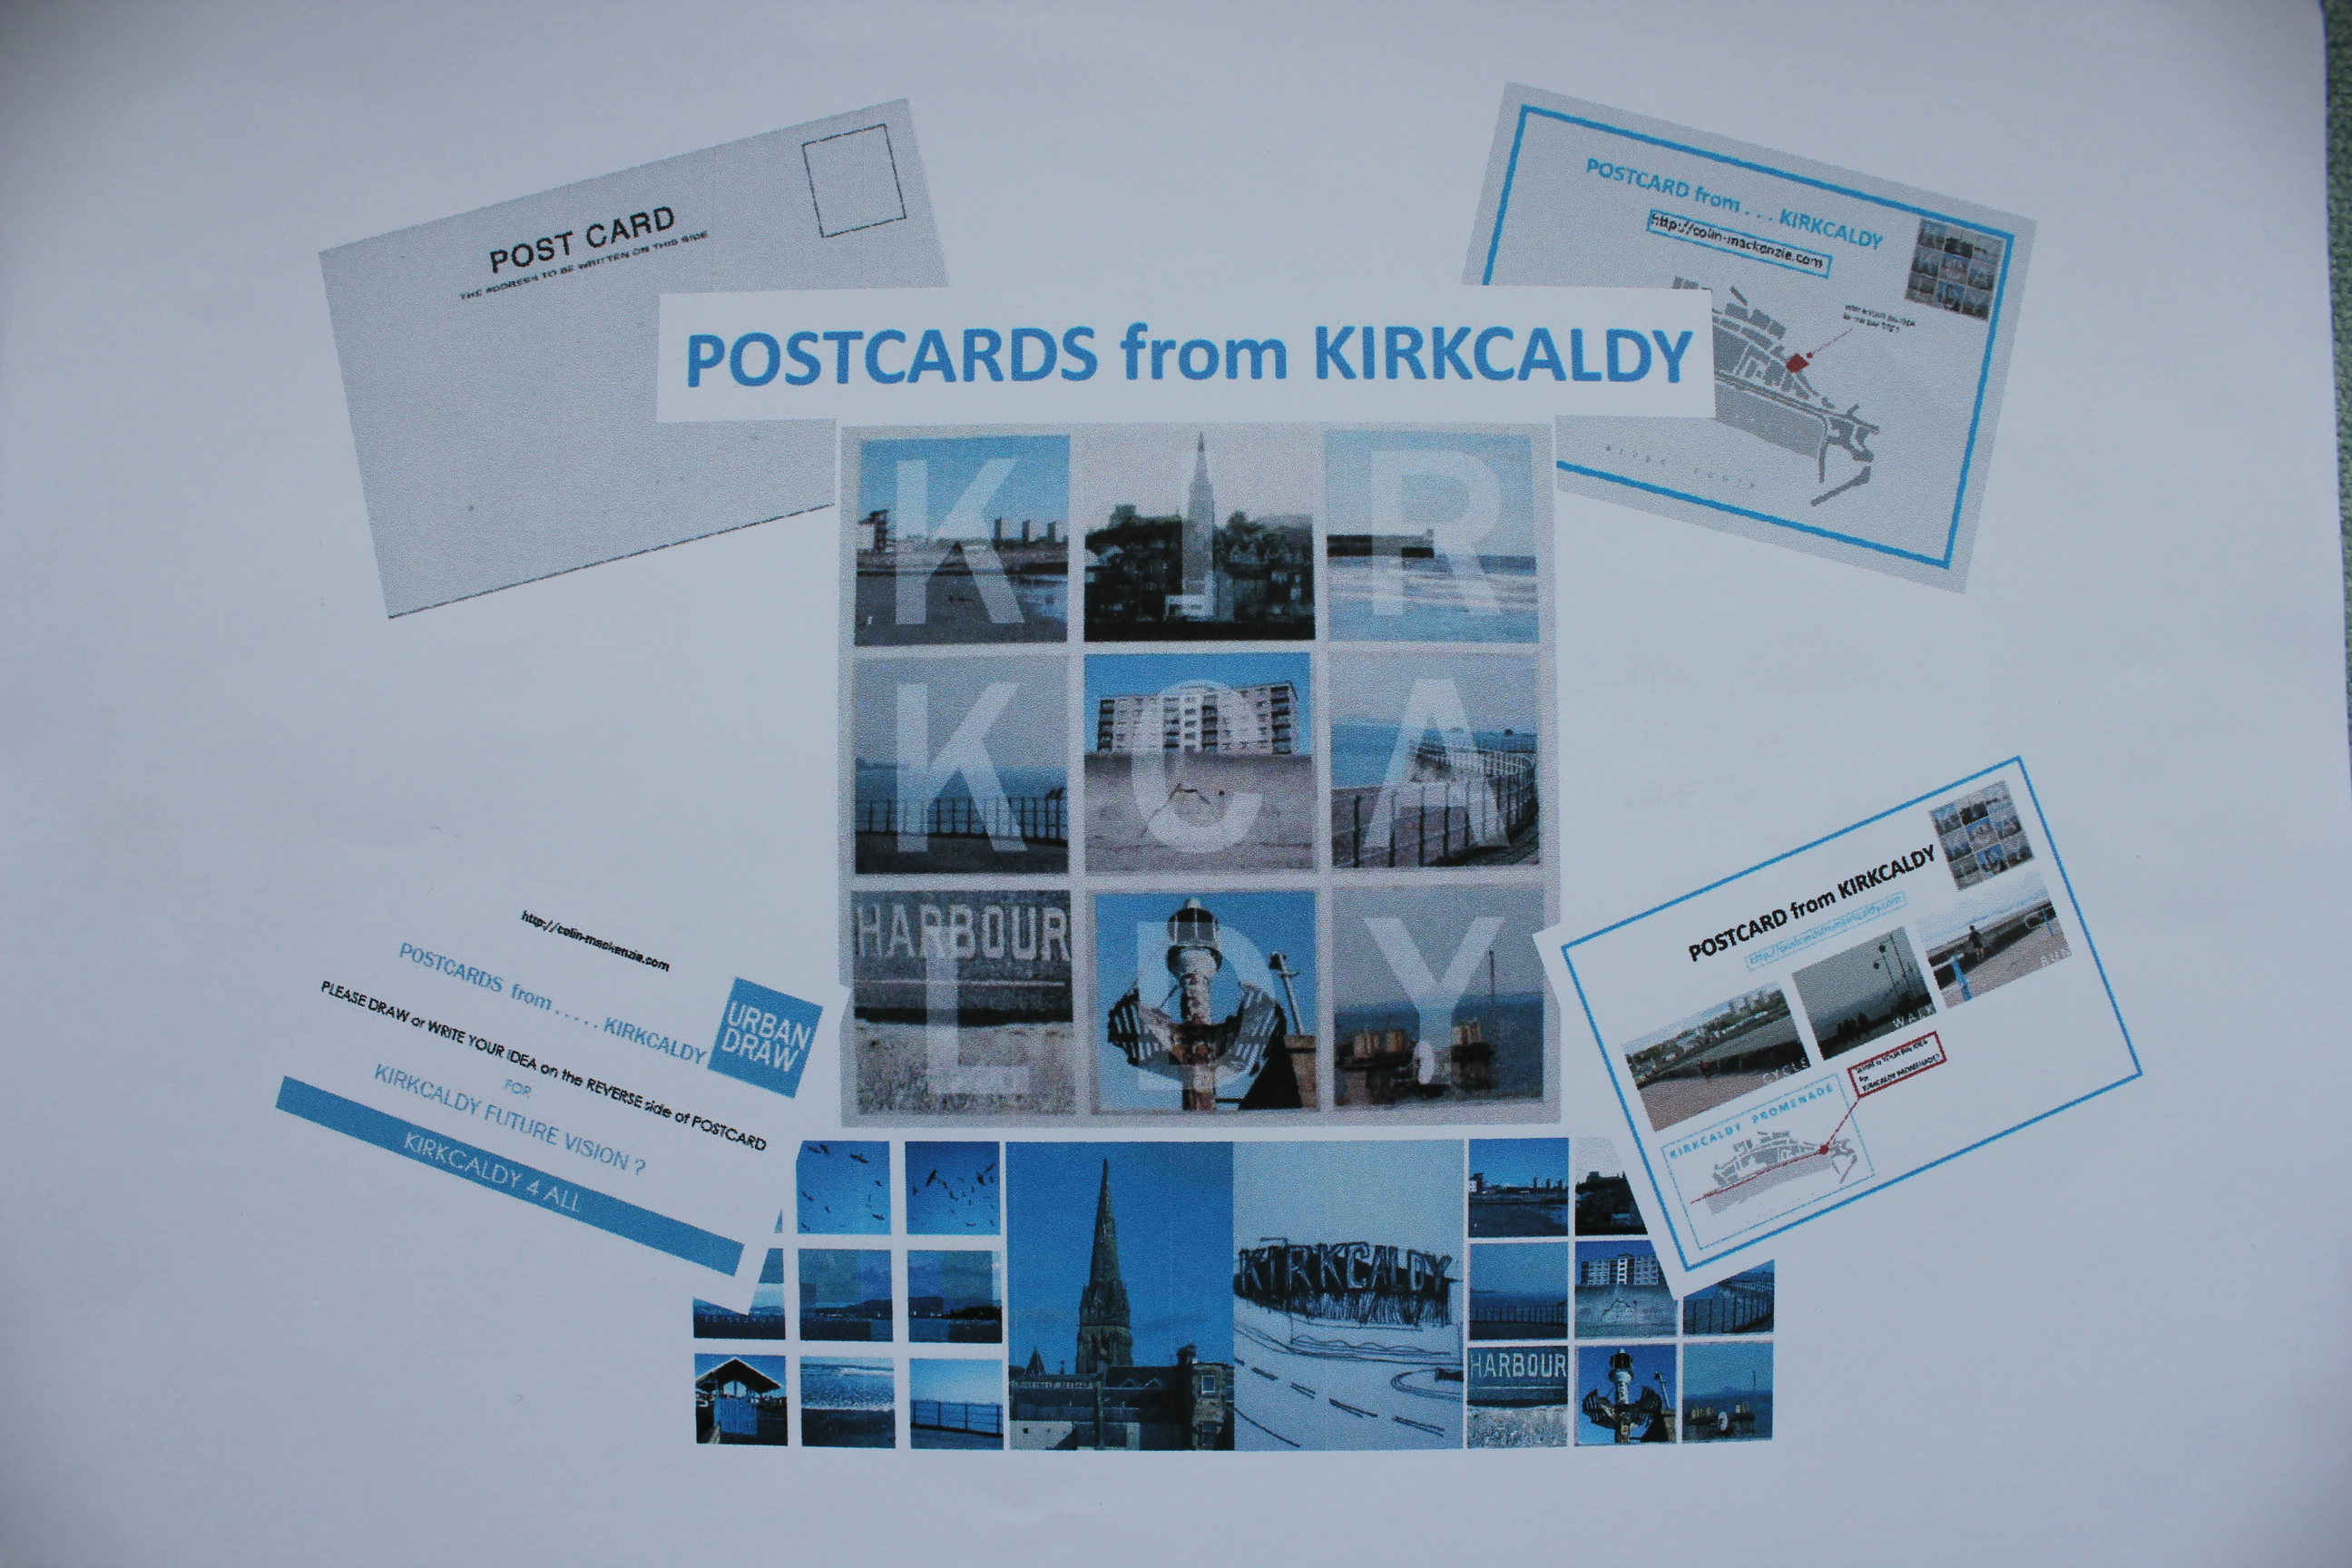 ESSENCE OF THE POSTCARDS